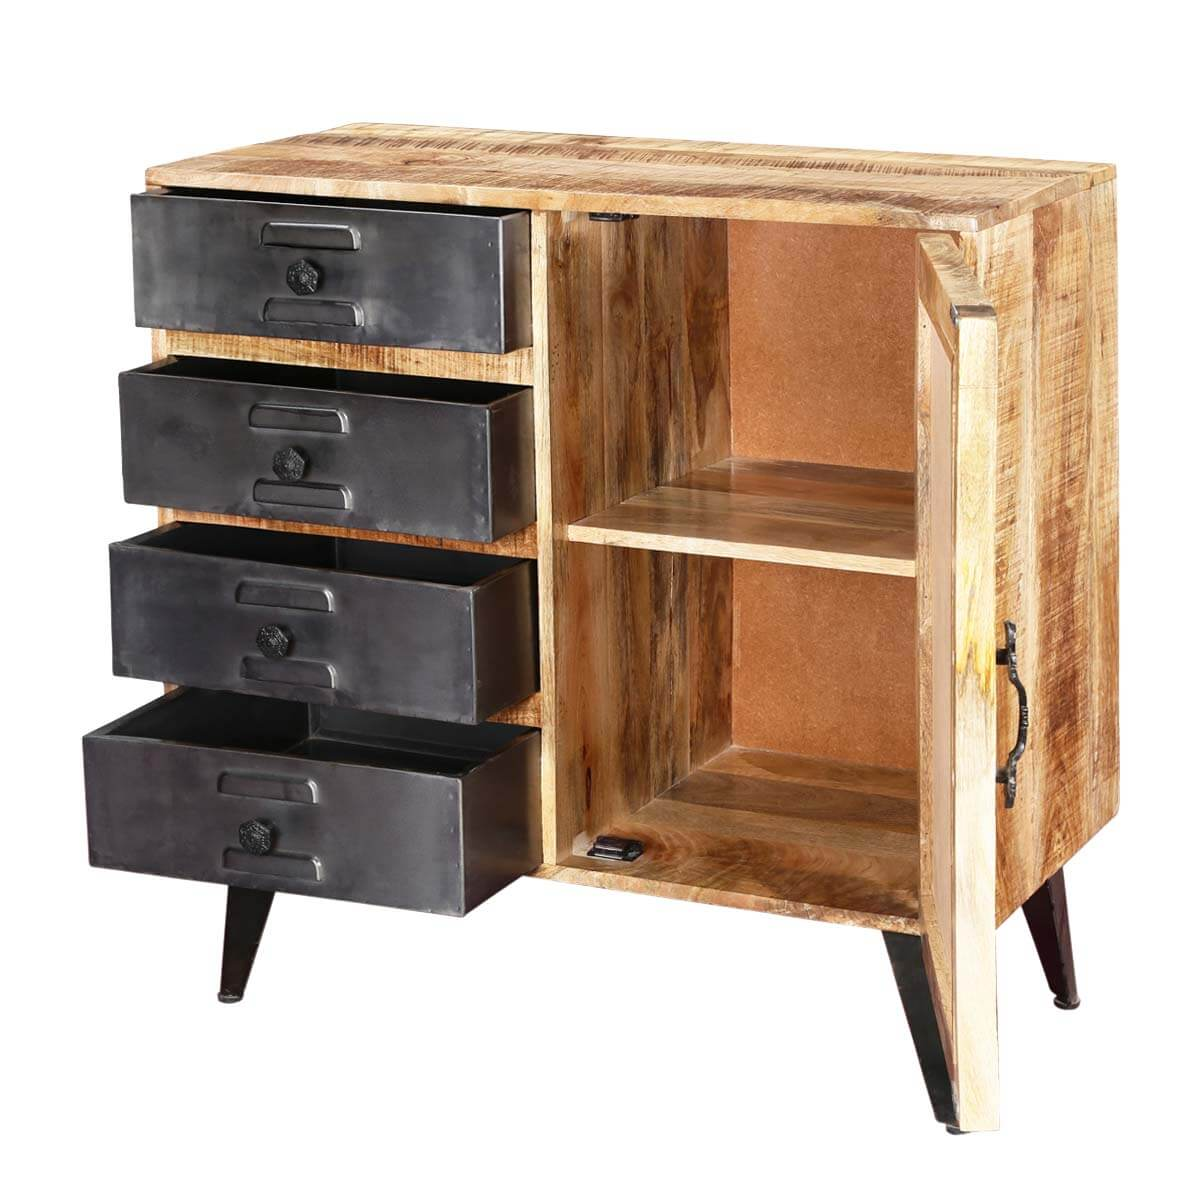 design home open beautiful up intricately accent an pin mirrored cabinet space carved and door a sleek storage front the to reveal fronts with diy this on cabinets inside